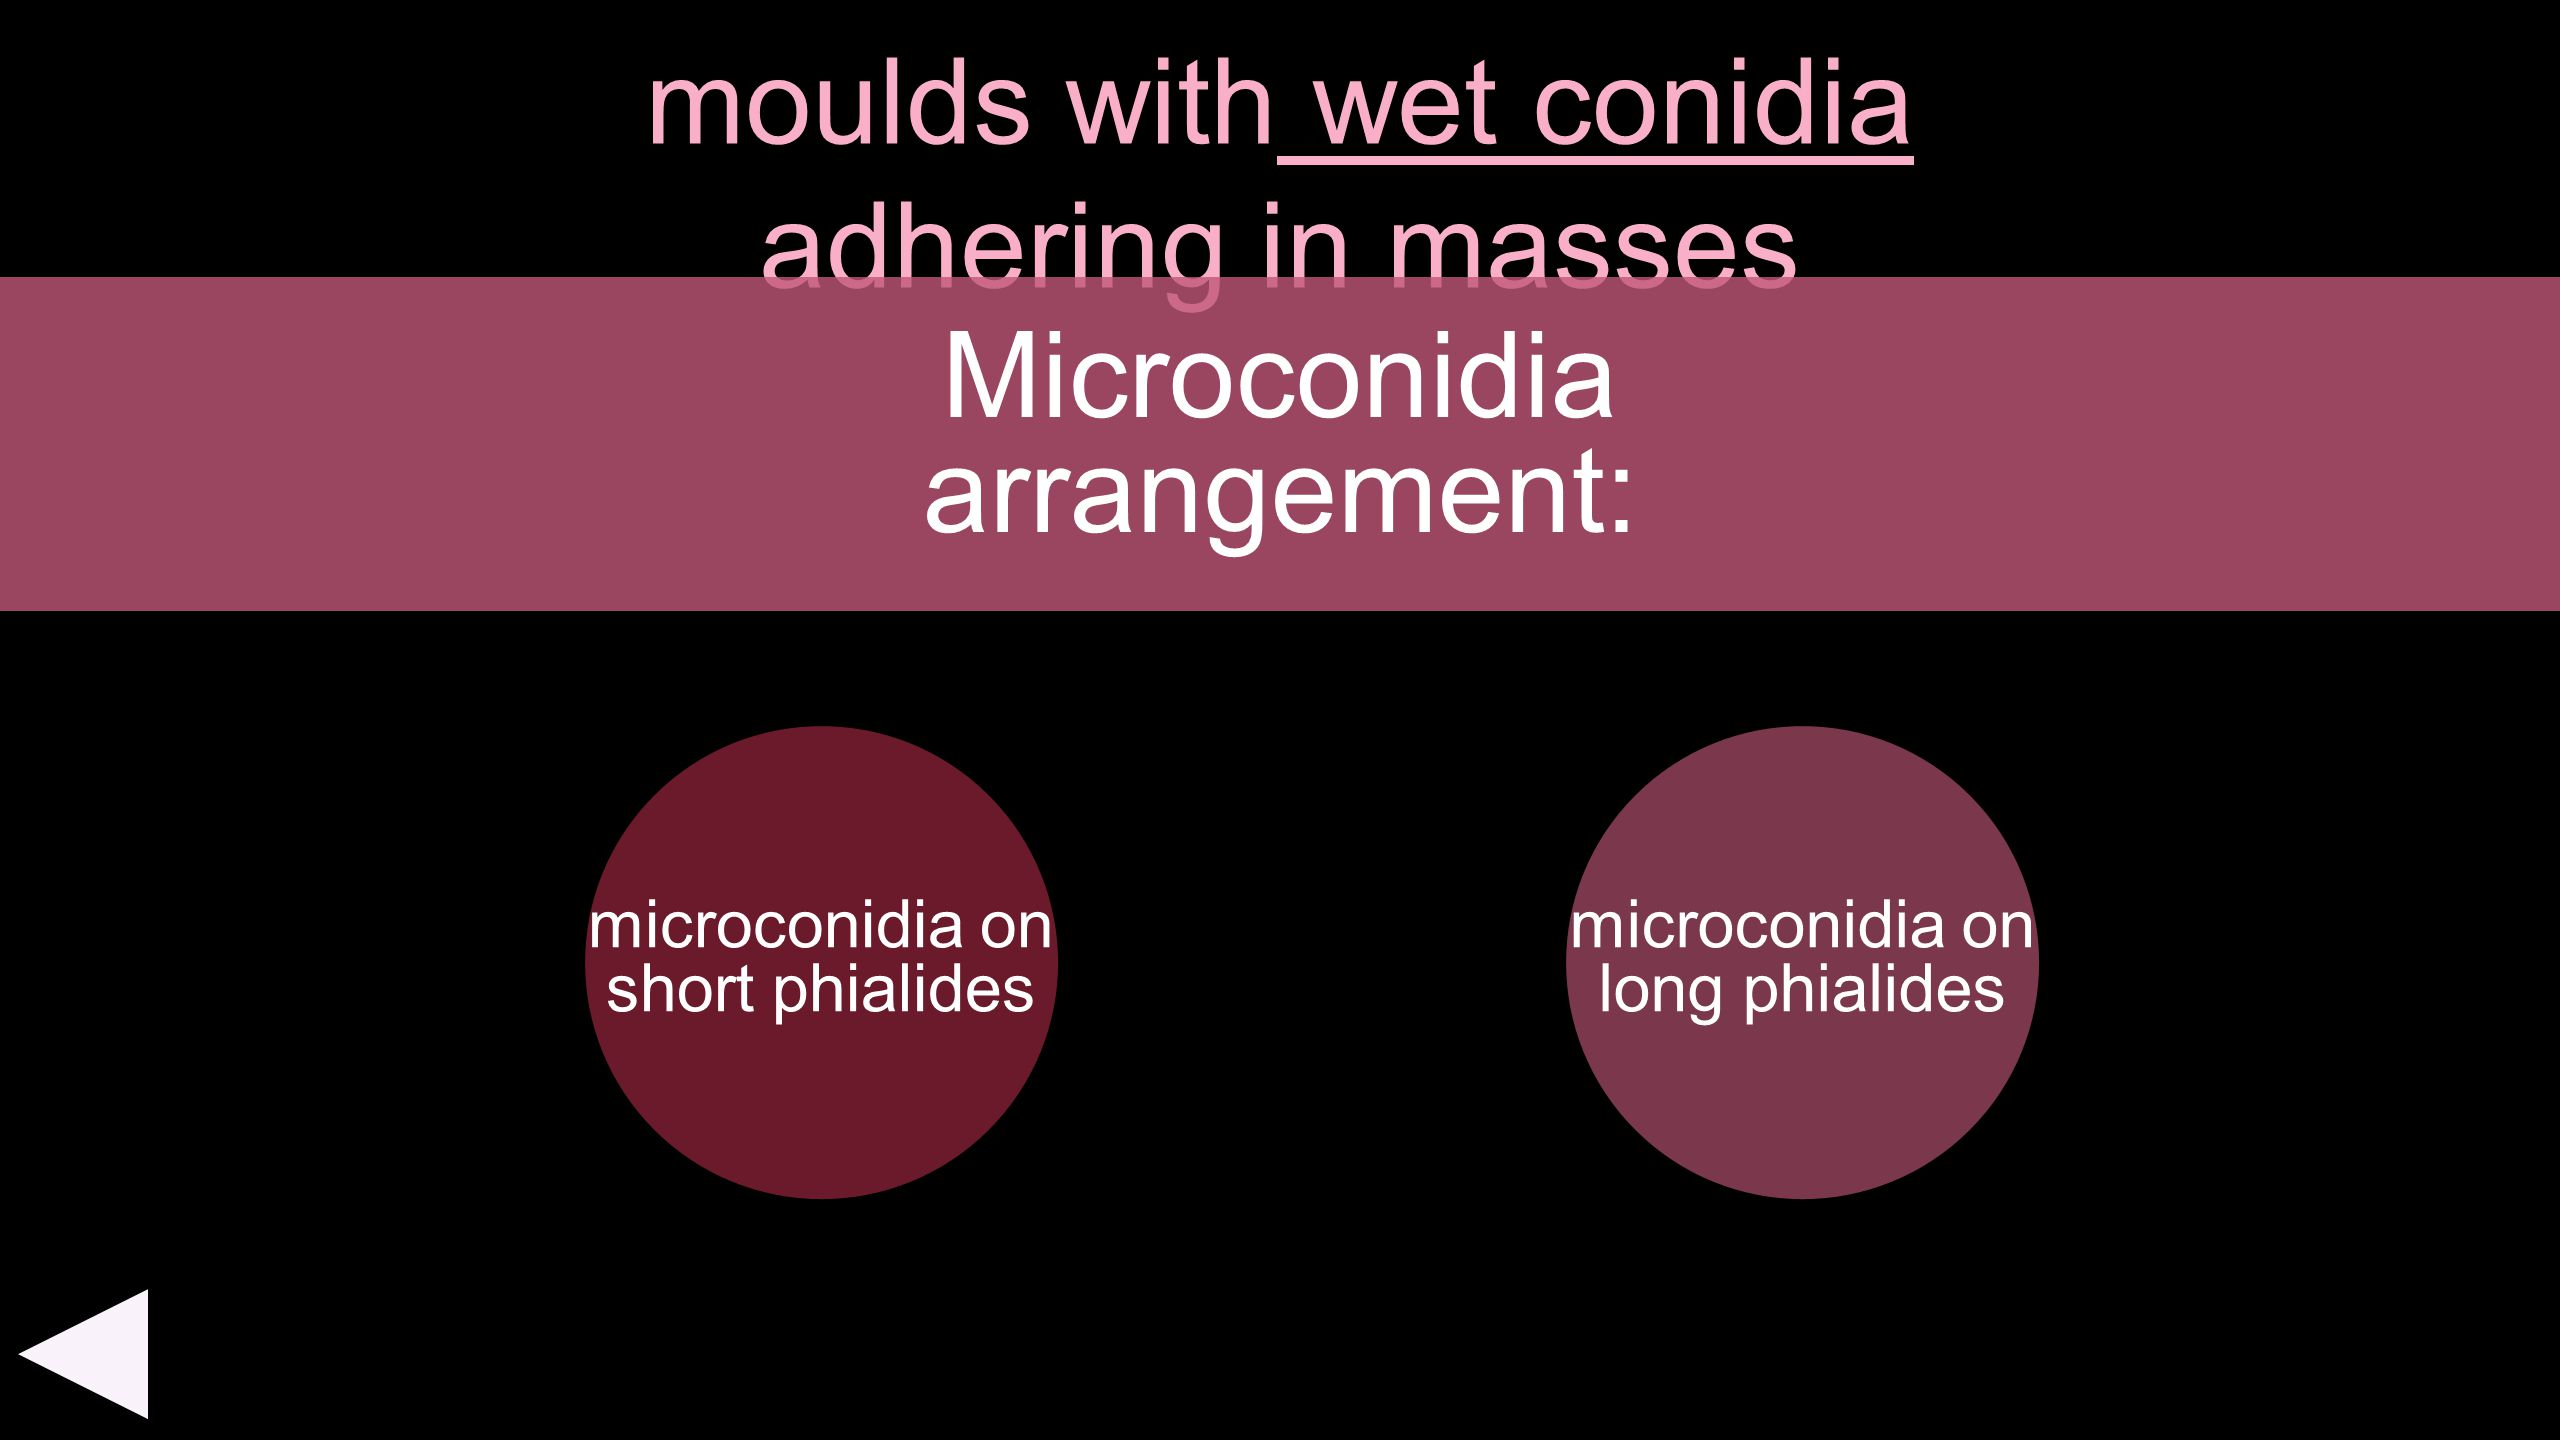 moulds with wet conidia adhering in masses